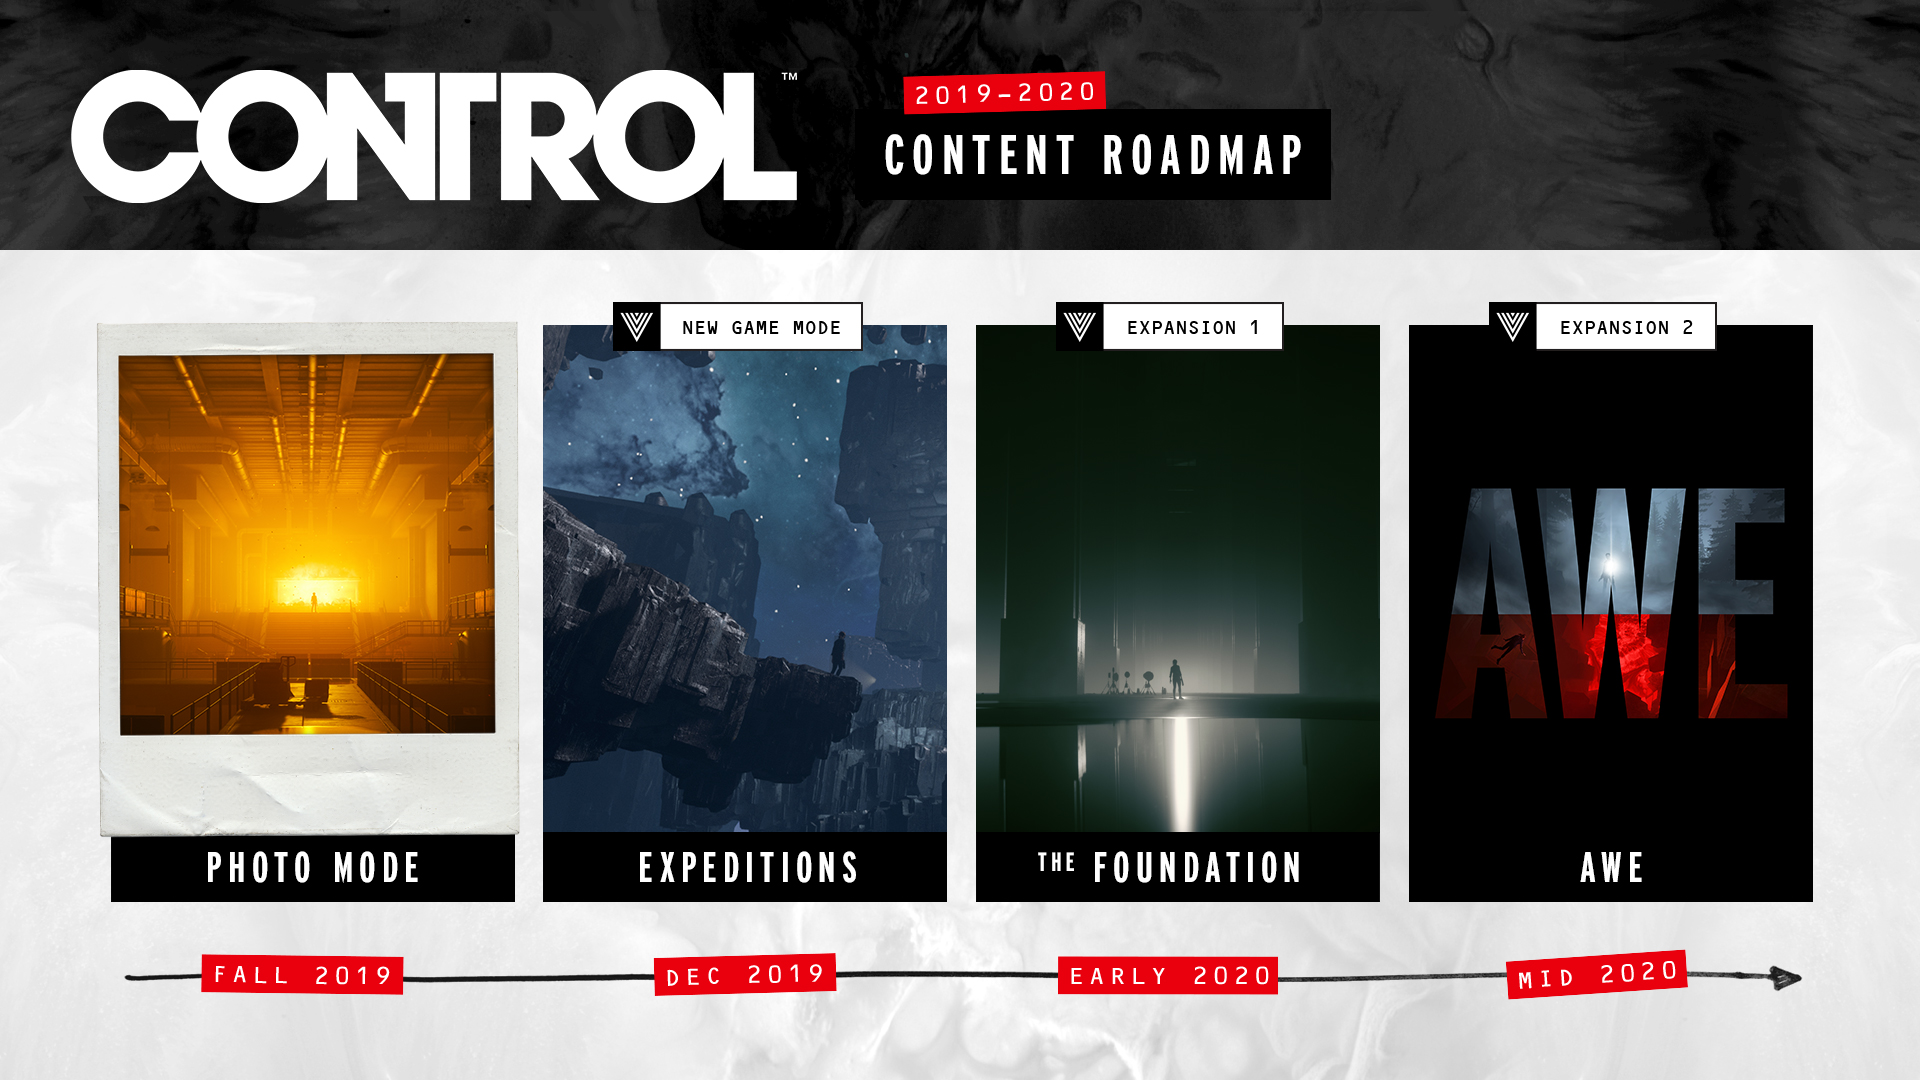 Control DLC road map reveals new modes and expansions